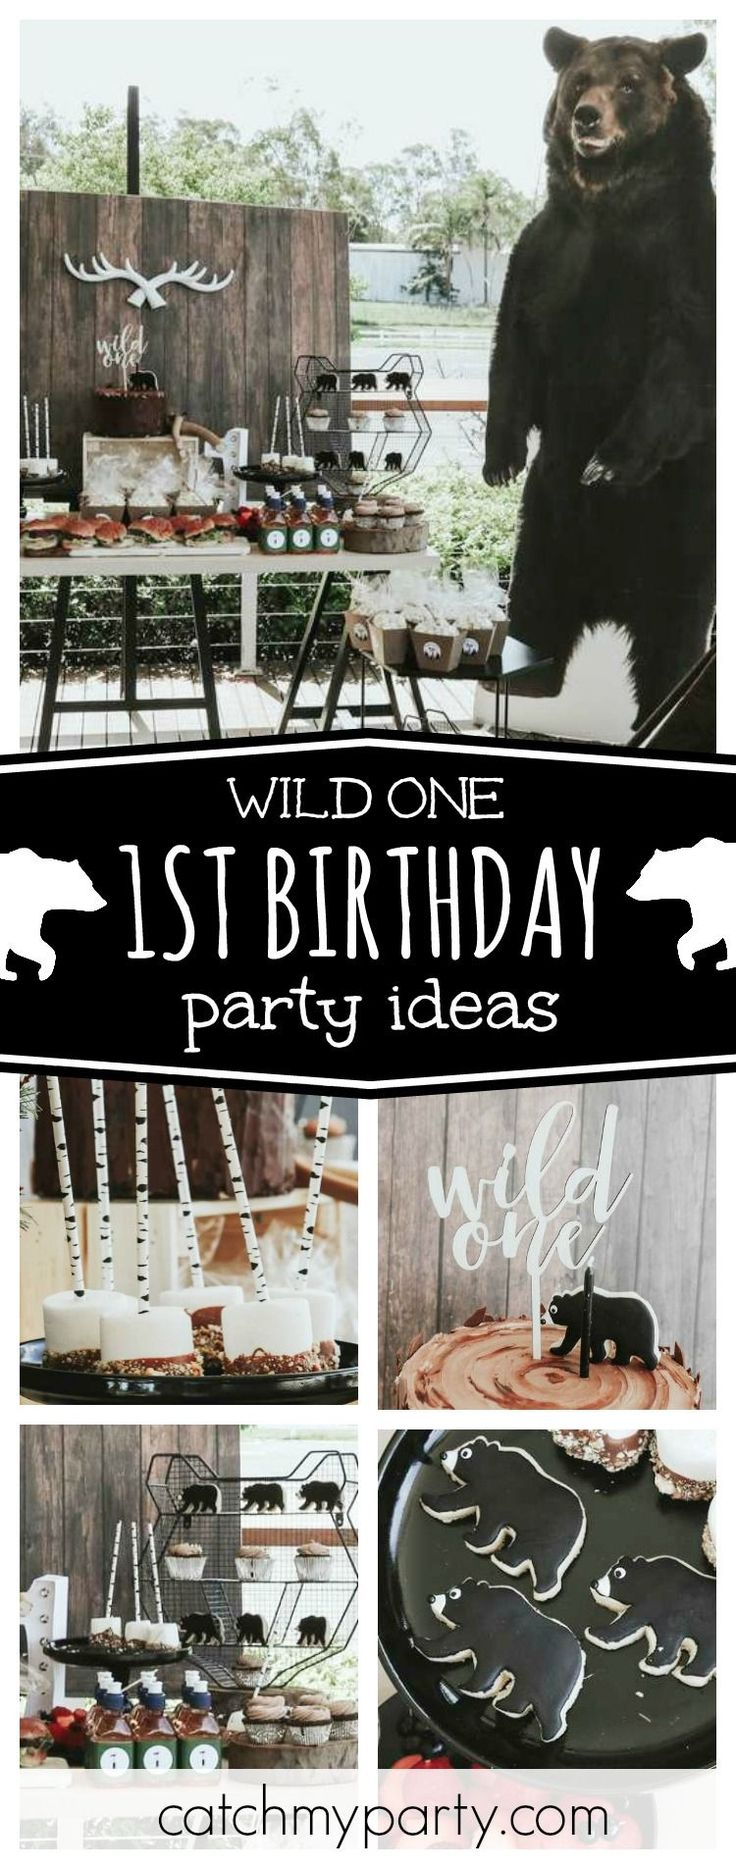 first birthday invitation template india%0A Check out this awesome Wild One  st birthday party  The bear cookies are so  cool